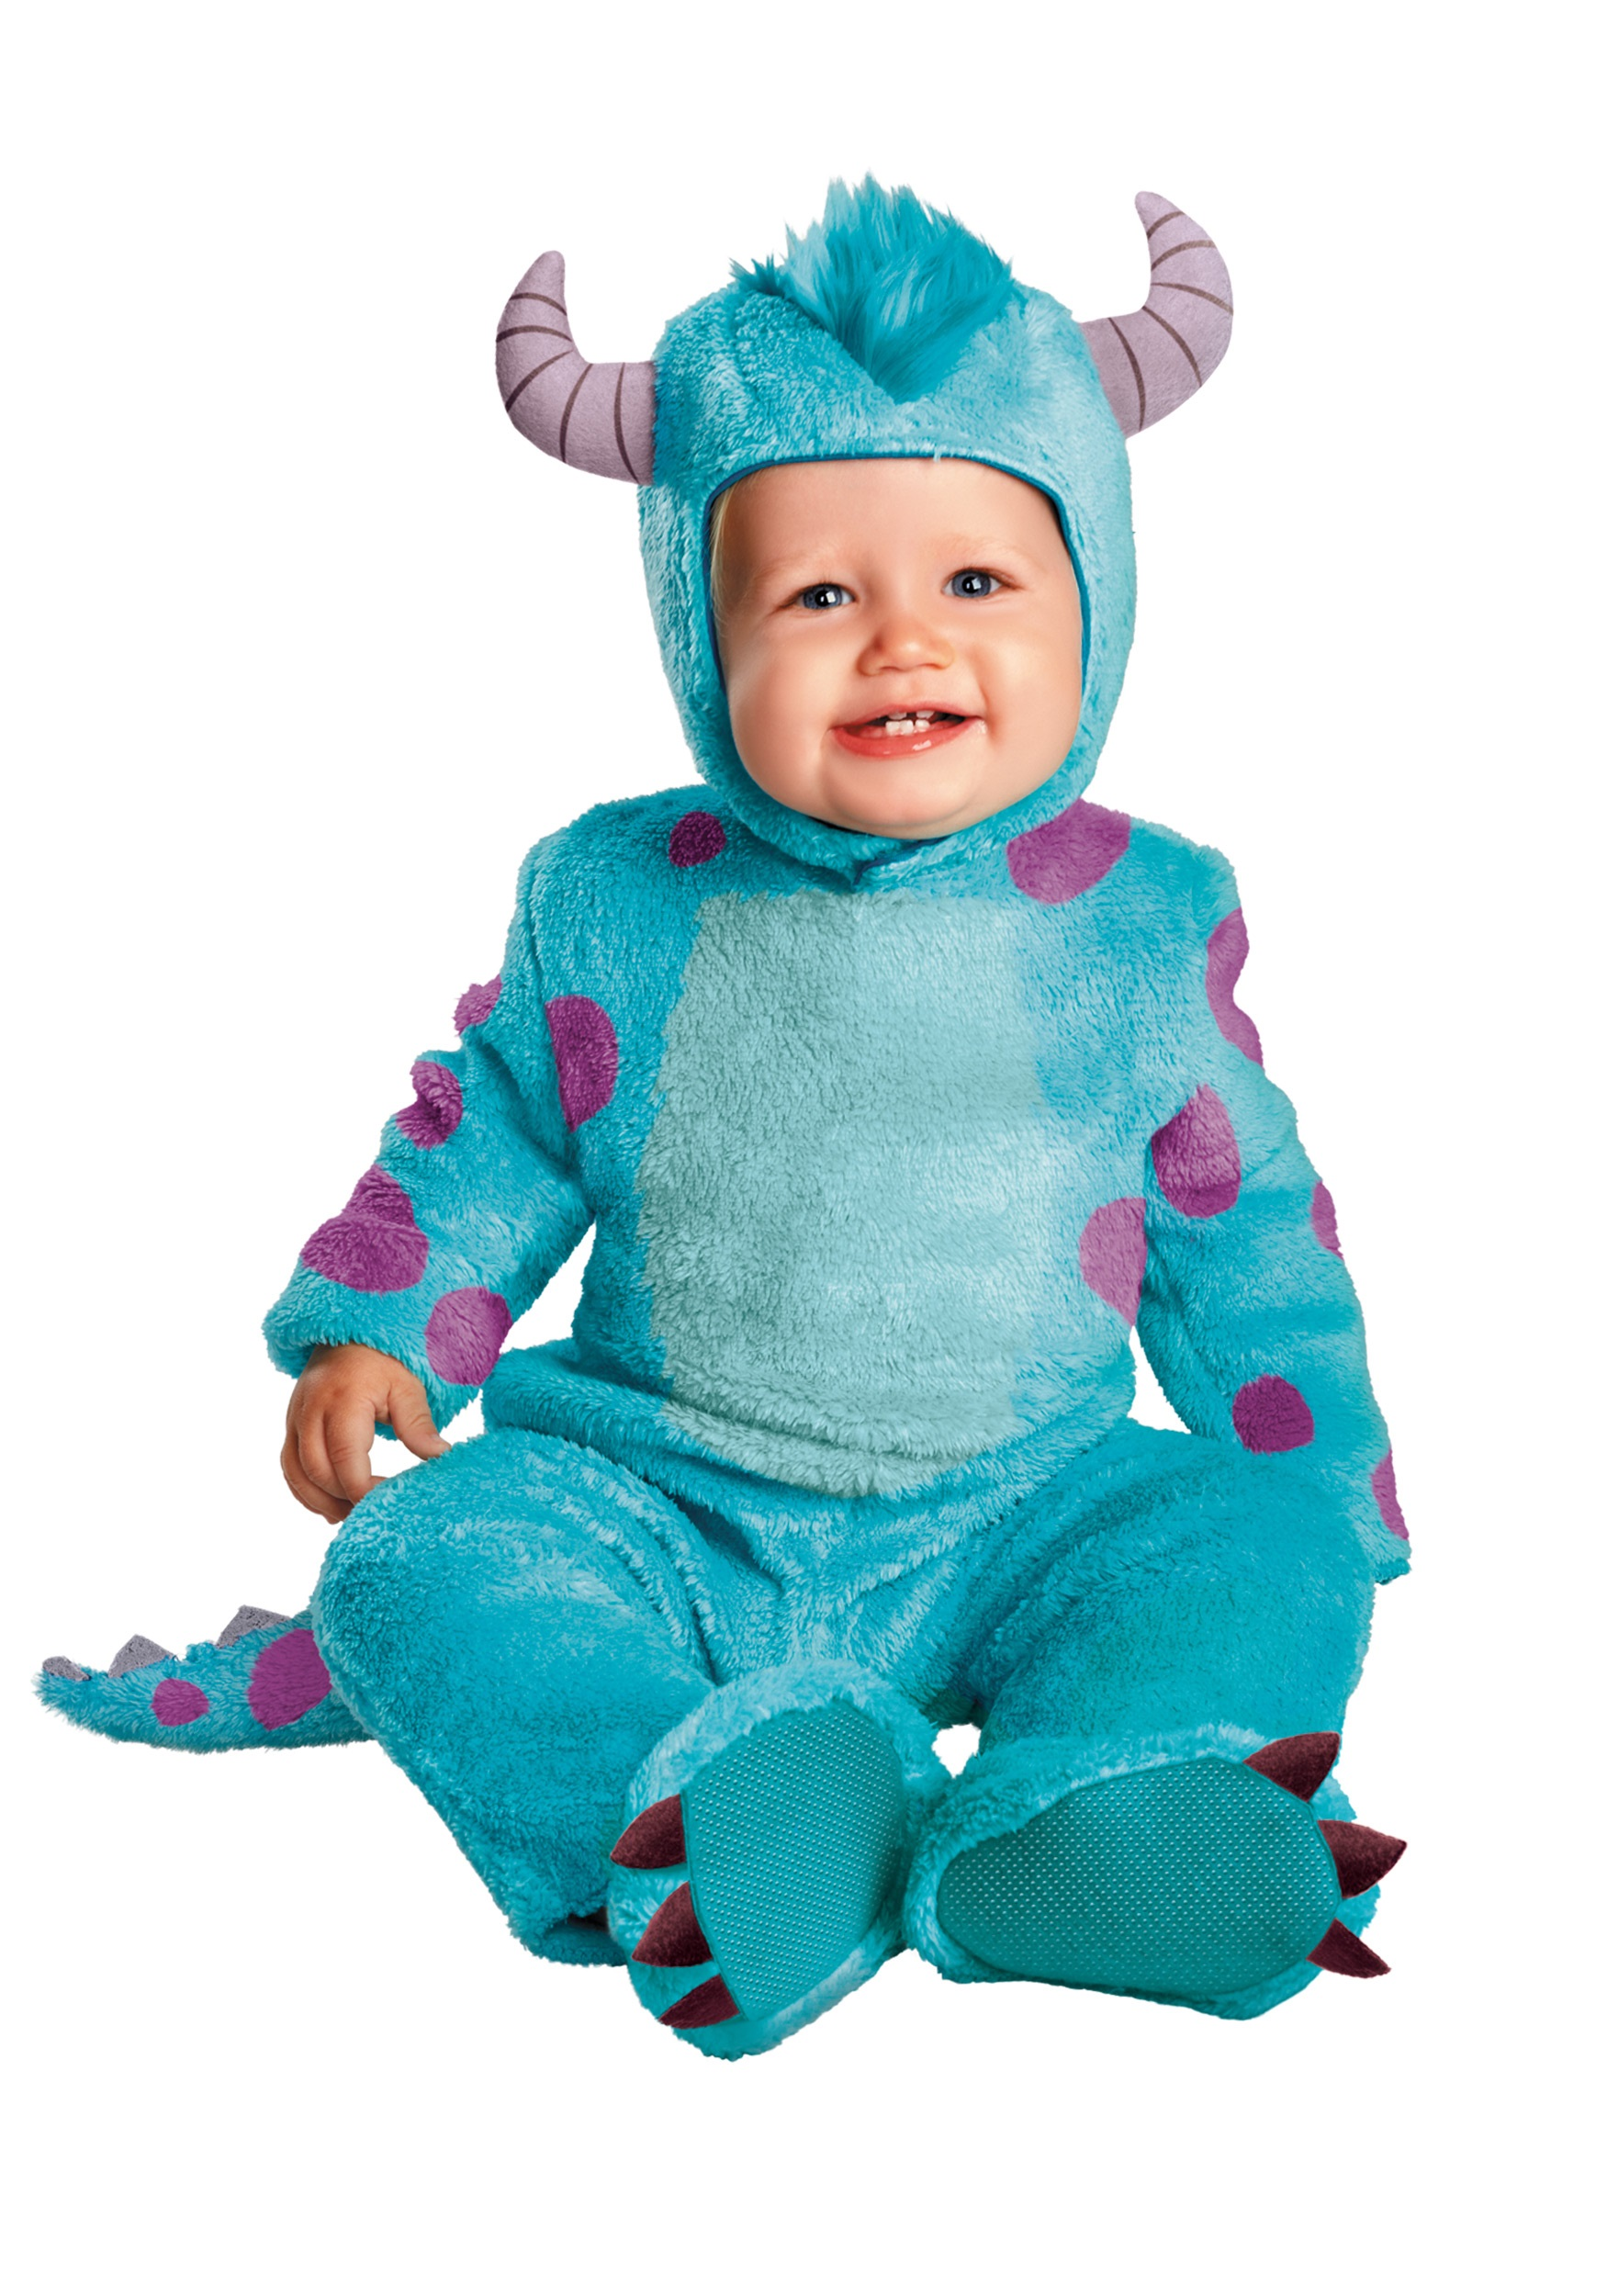 Child Classic Monsters Inc Sulley costume  sc 1 st  Fun.com & Infant Classic Sulley Costume